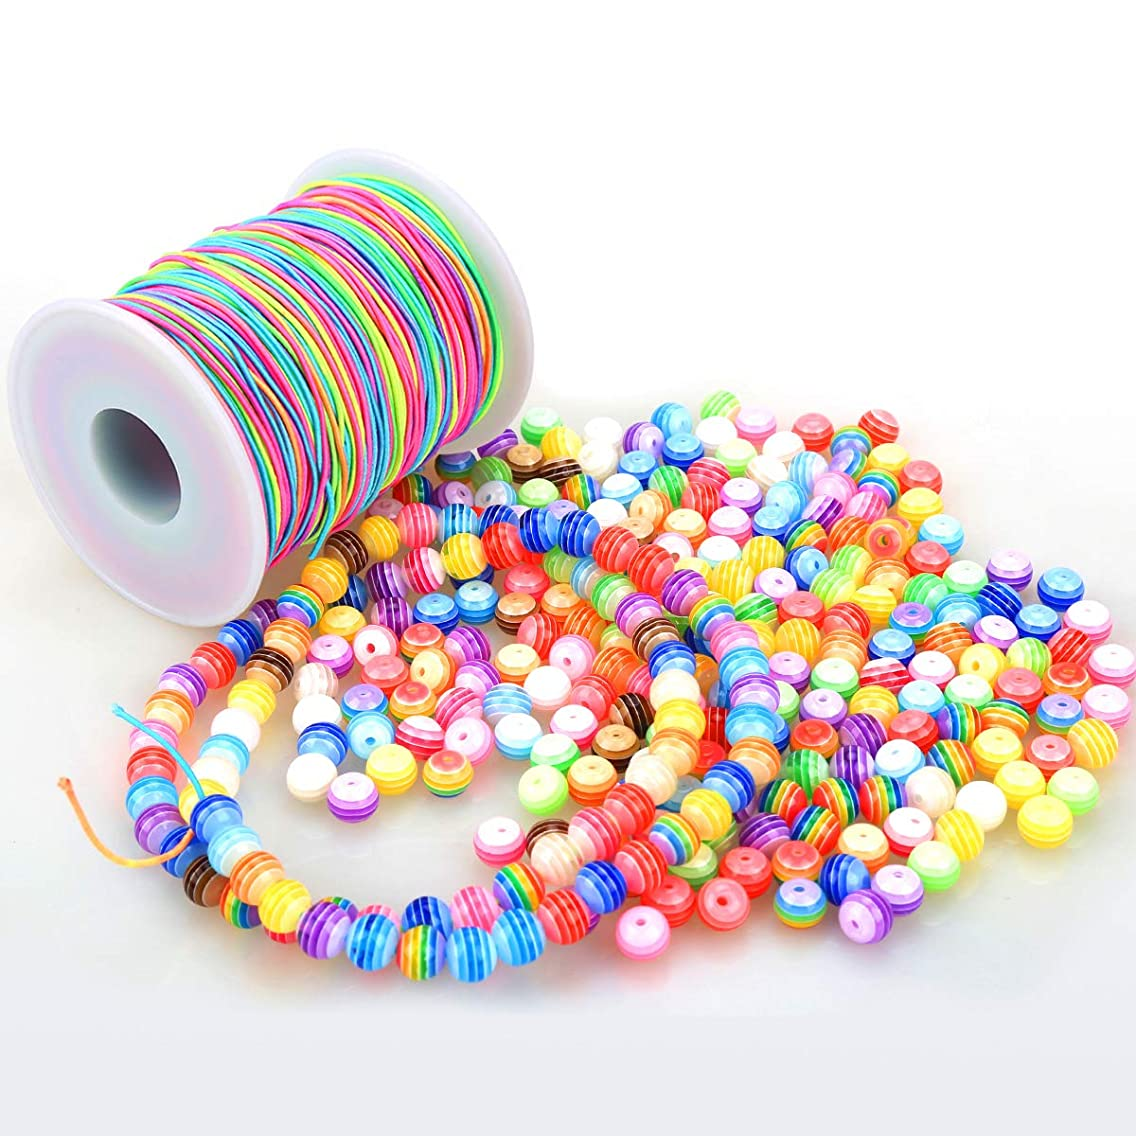 300 PCS Beads and 100 m Elastic Cord Beading Threads Stretch String Fabric Crafting Cords for Jewelry Making, Rainbow